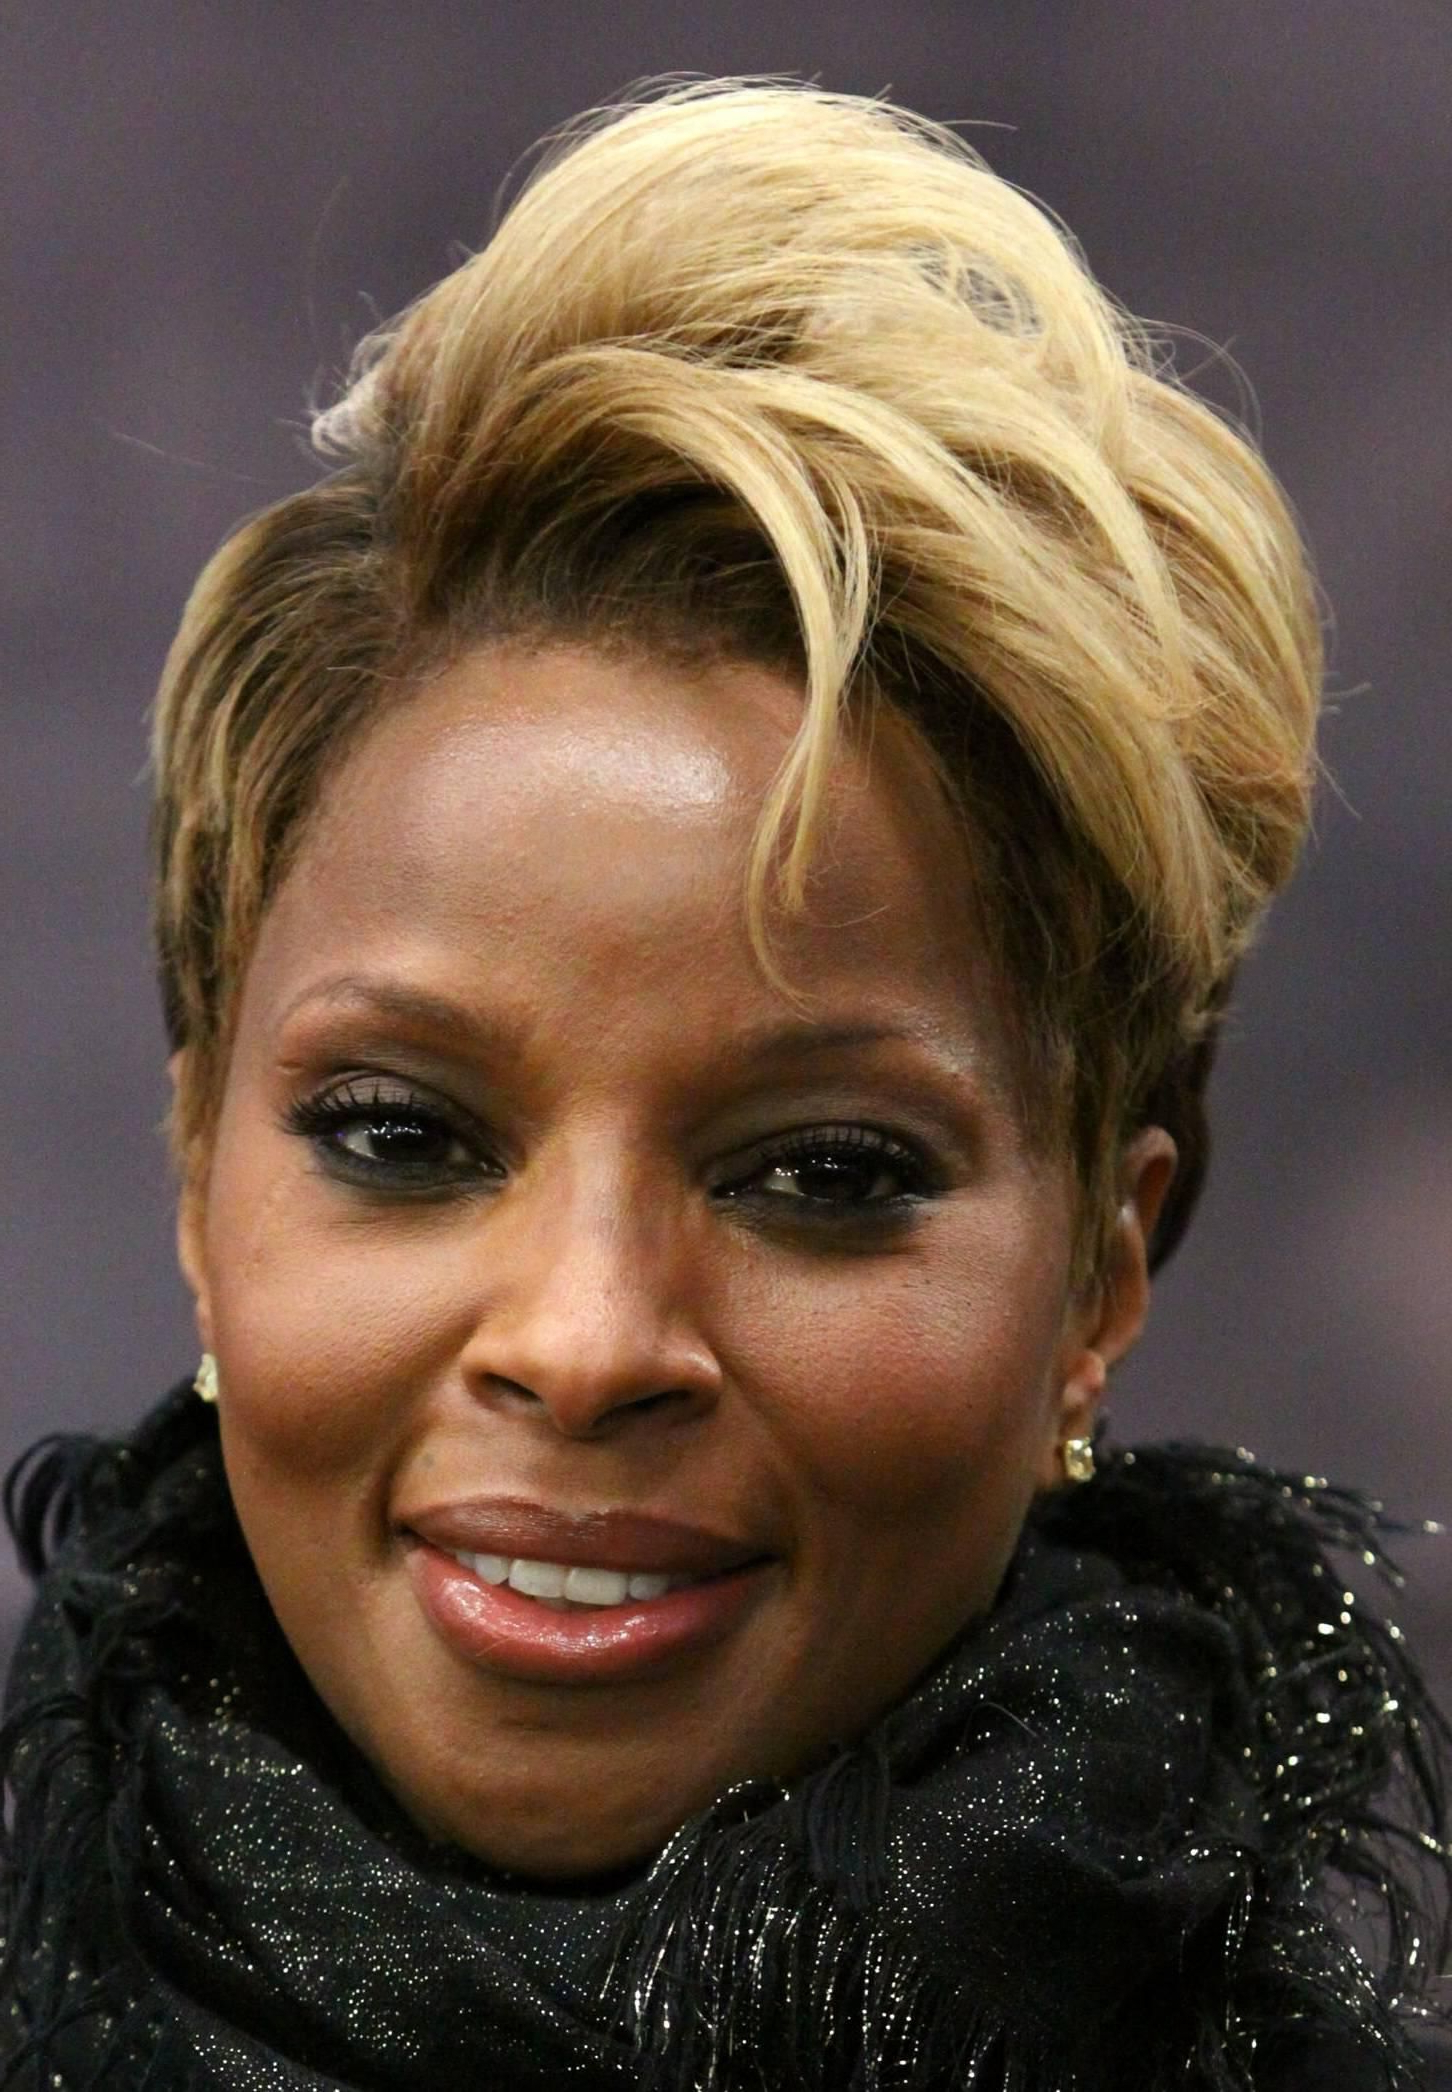 Beautiful Blonde Short Haircut Oval Face African American   New Look Within Short Hairstyles For Black Women With Oval Faces (View 3 of 25)